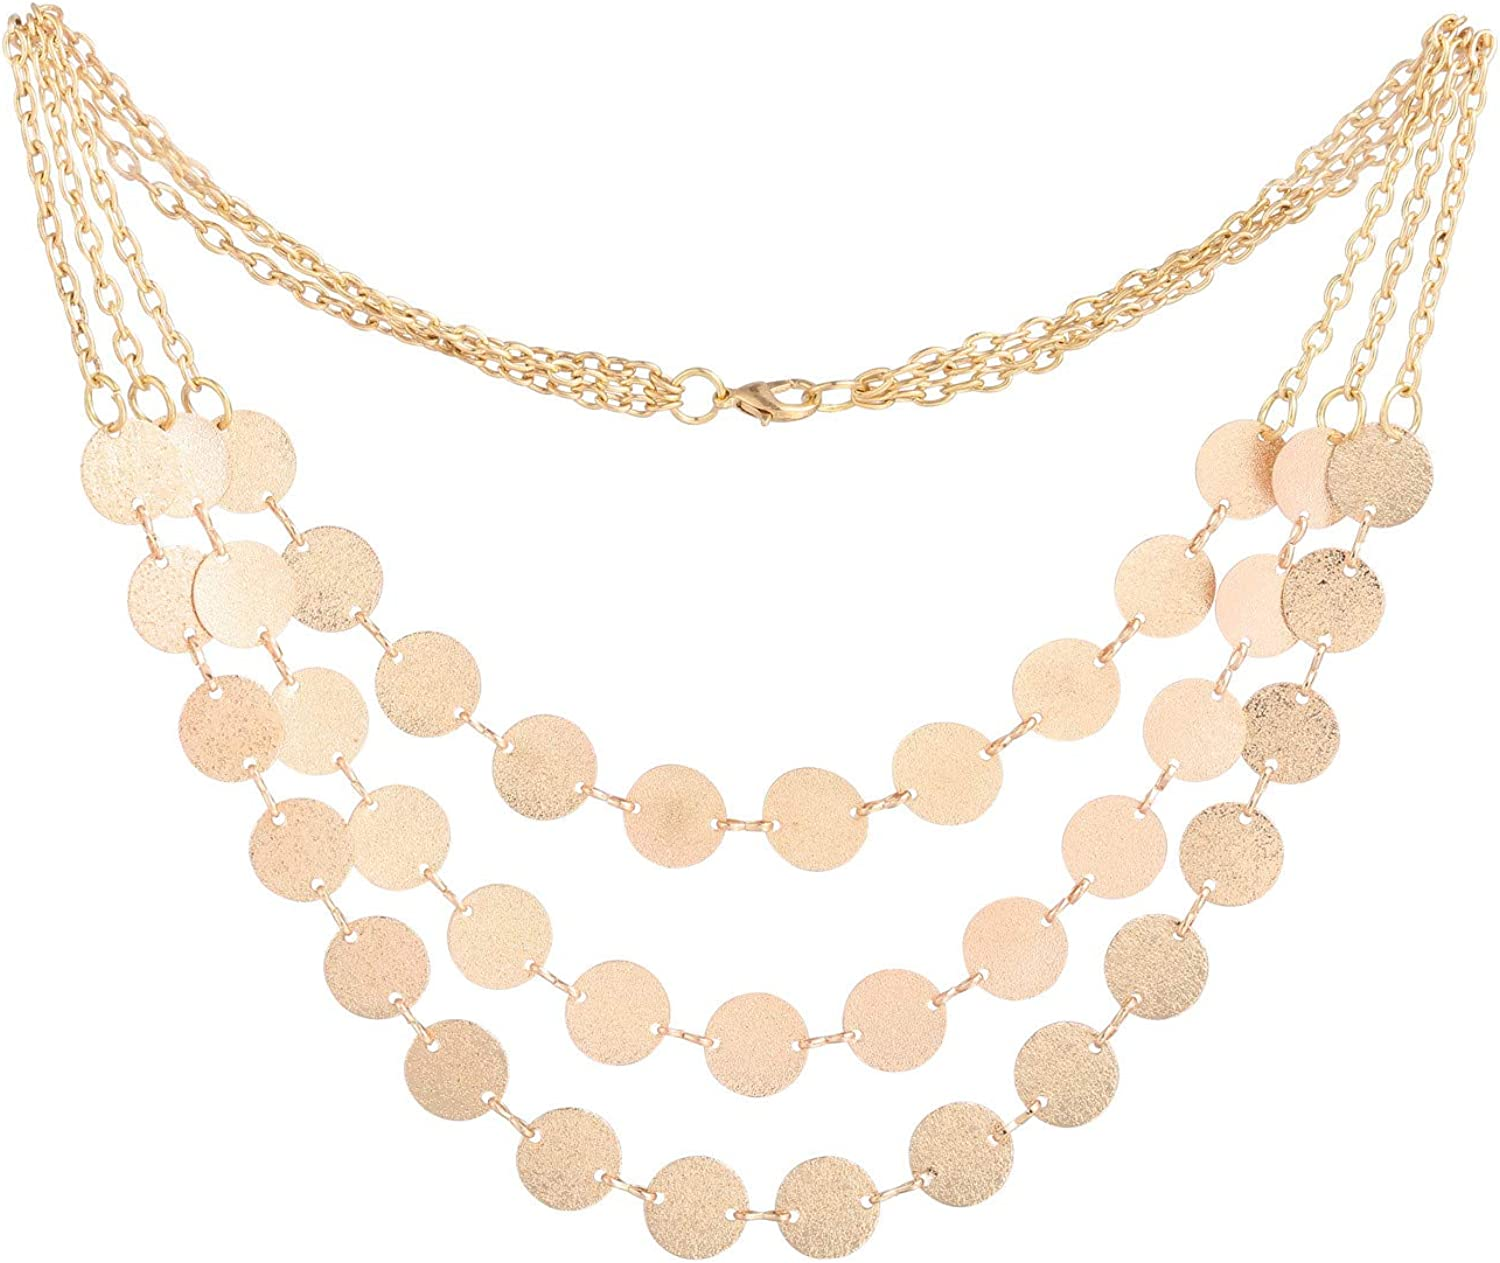 YAMULA Hot Japan's largest assortment Selling Choker Necklace Latest Max 72% OFF F Design for Women Top